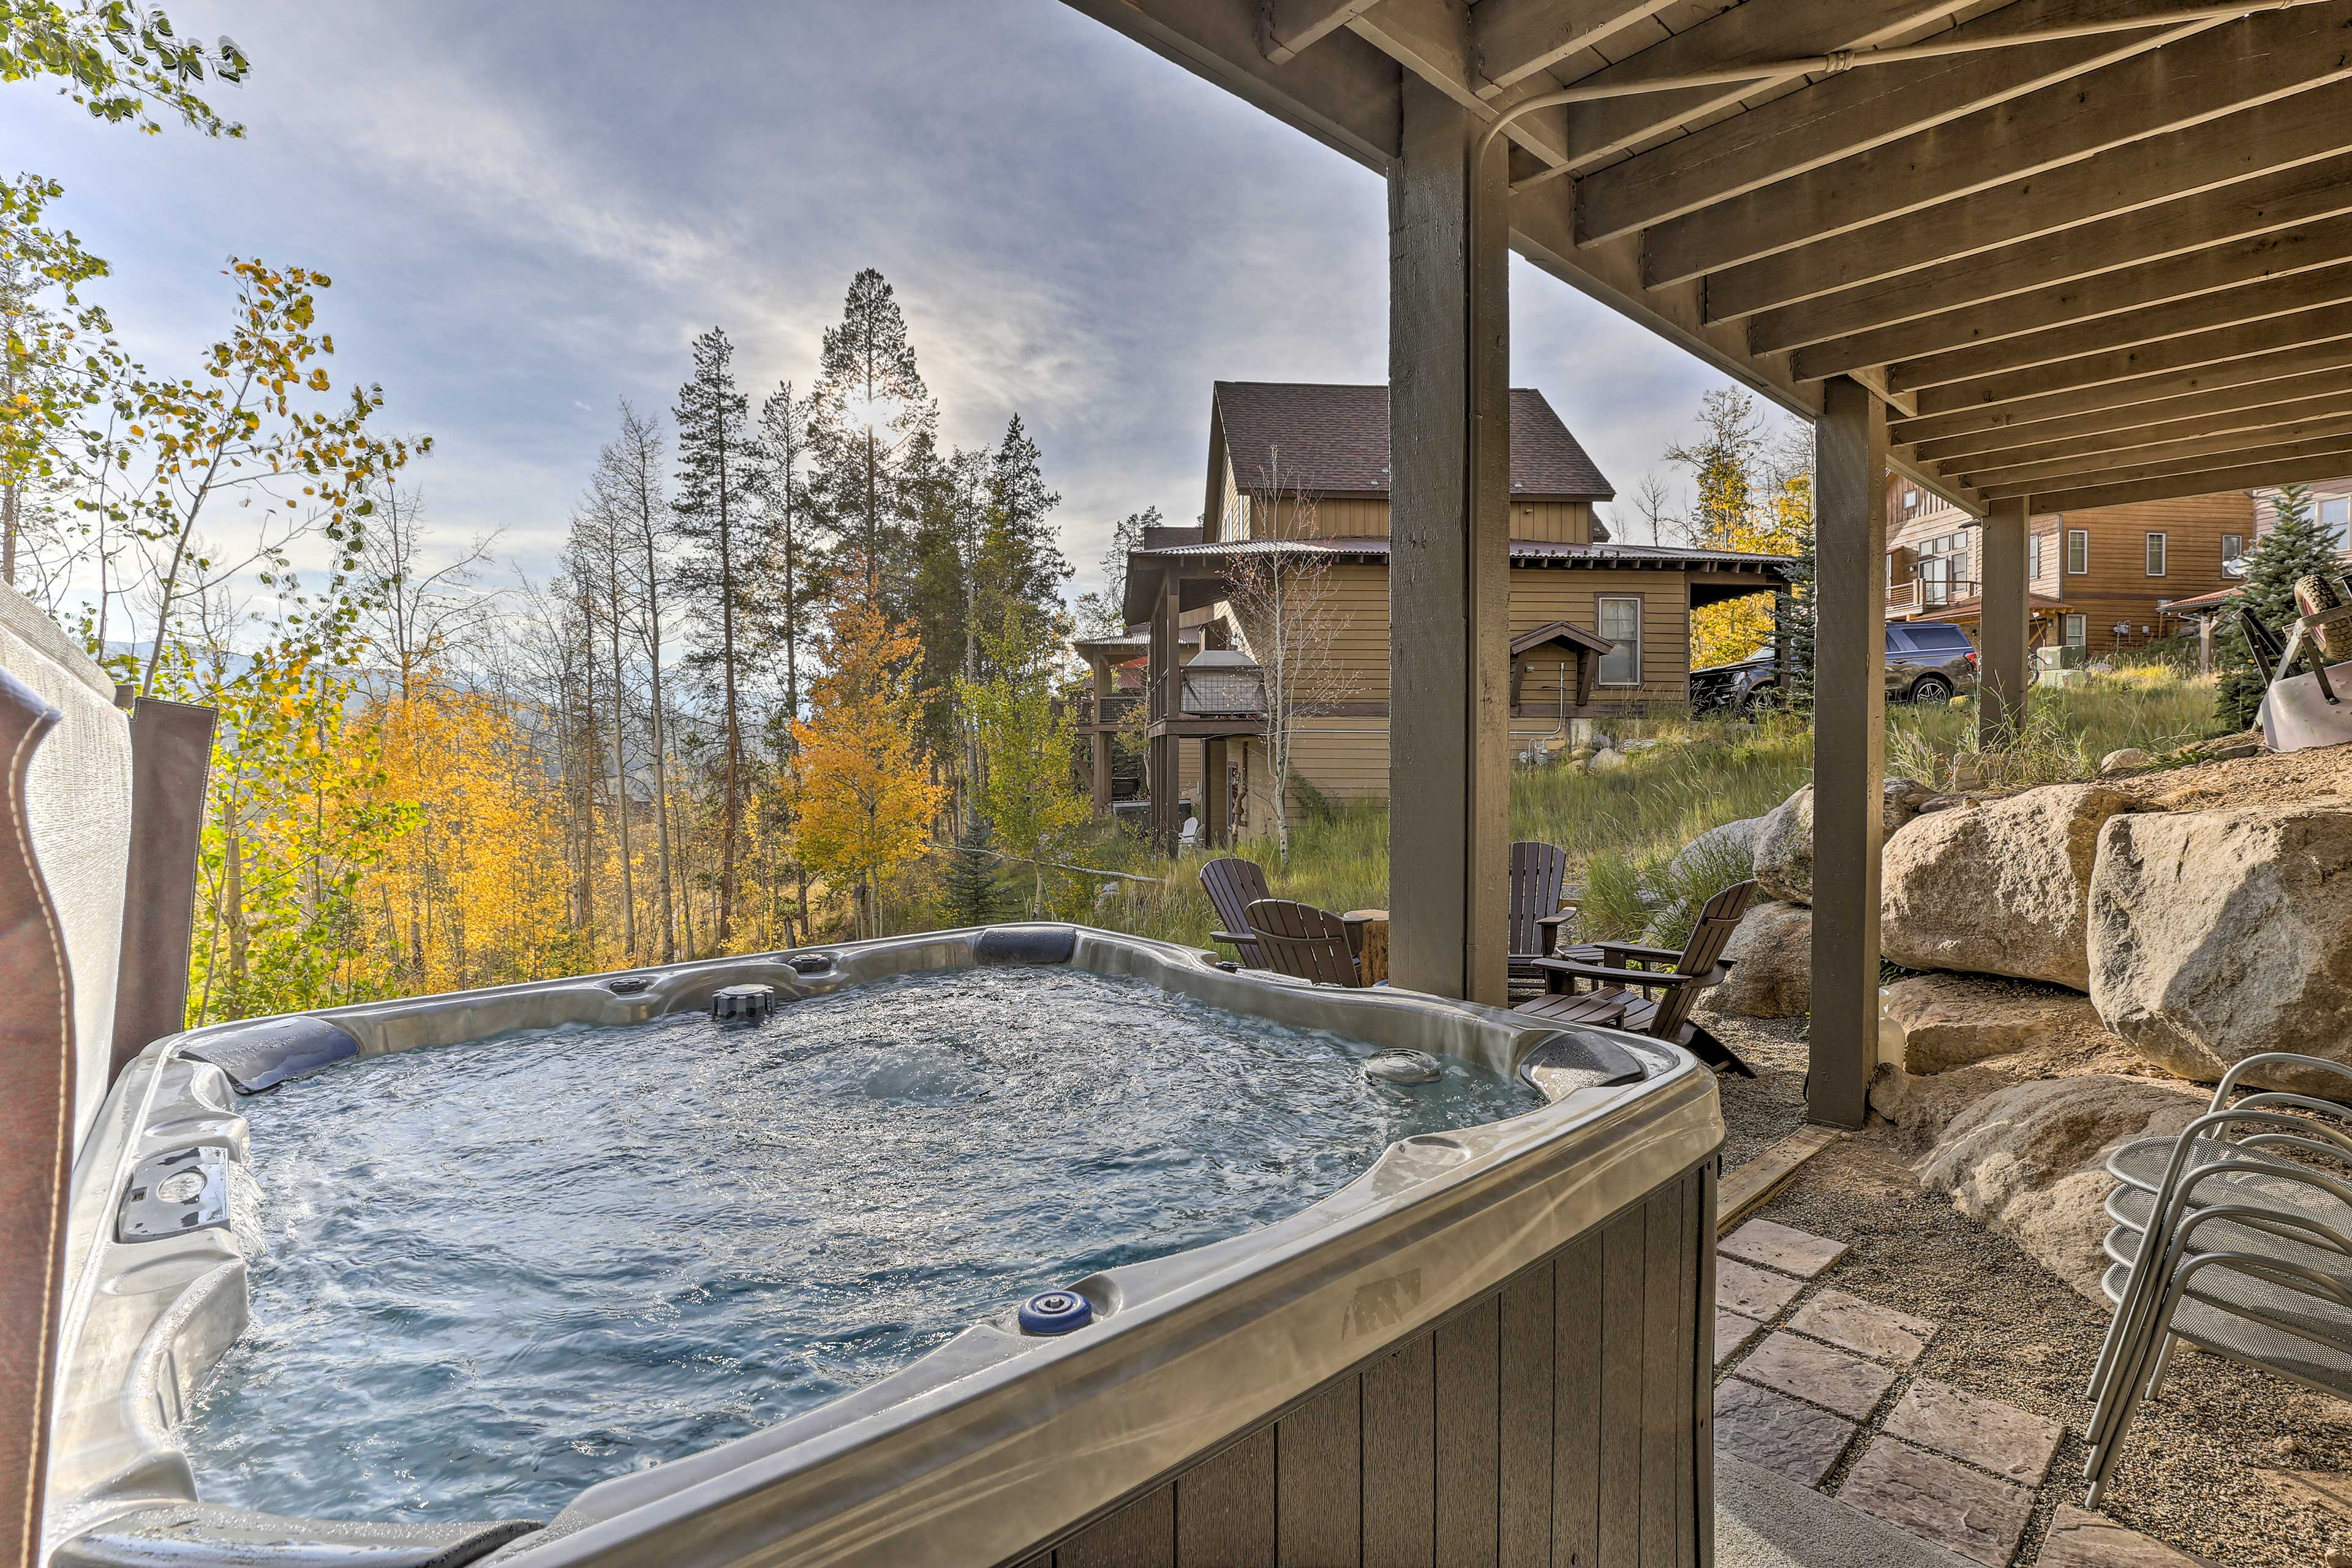 The views from this hot tub are simply breathtaking!